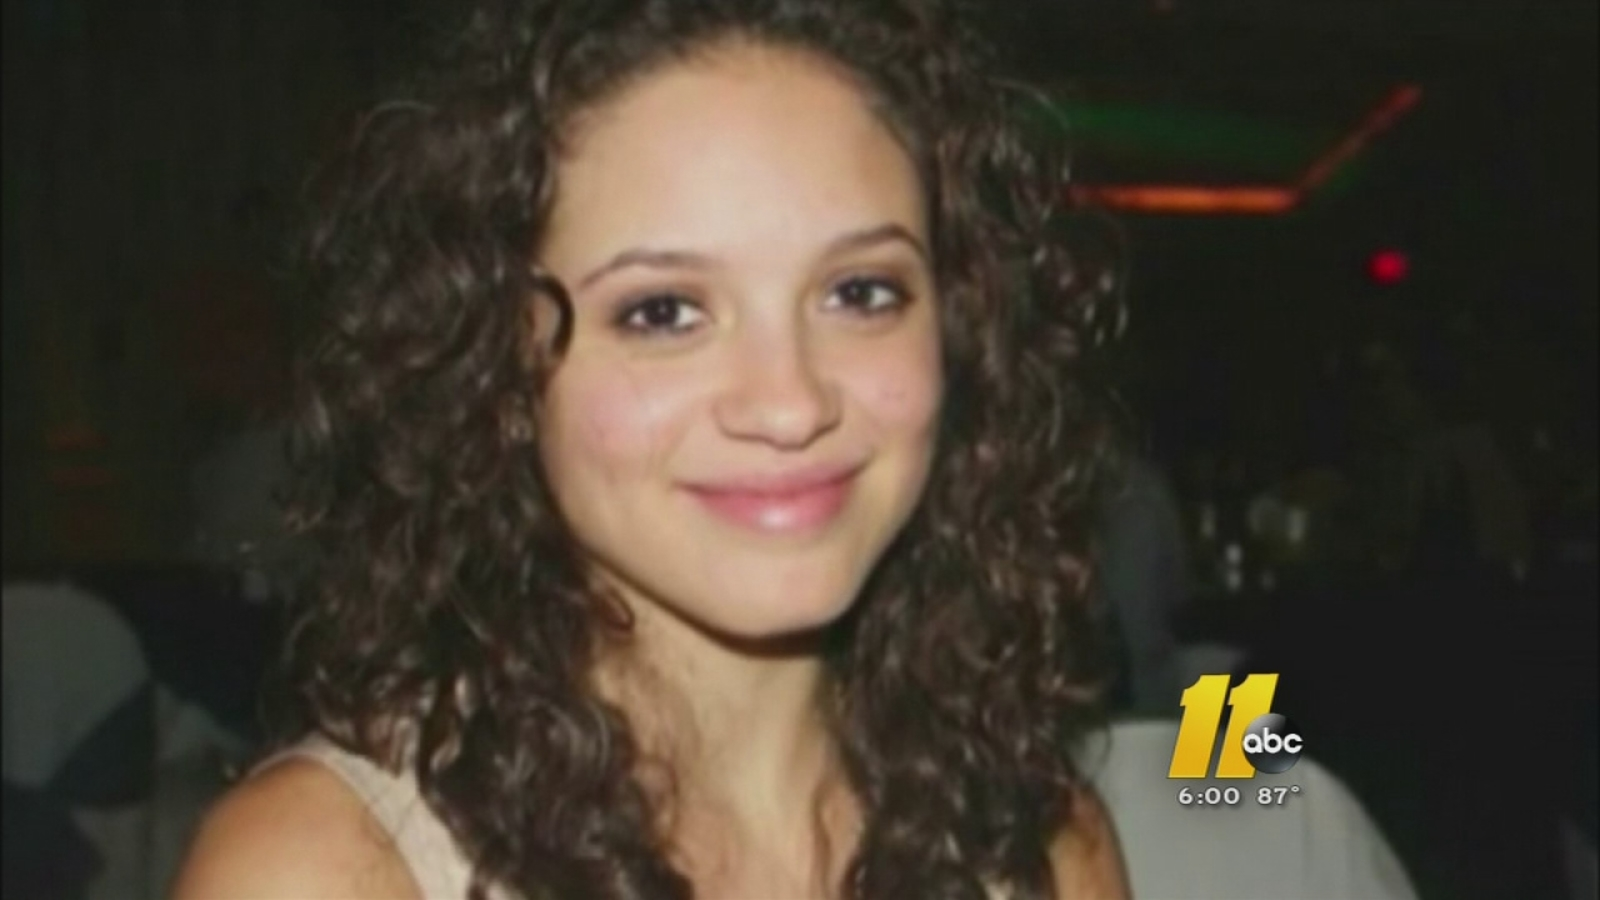 Autopsy shows brutality of Hedgepeth murder